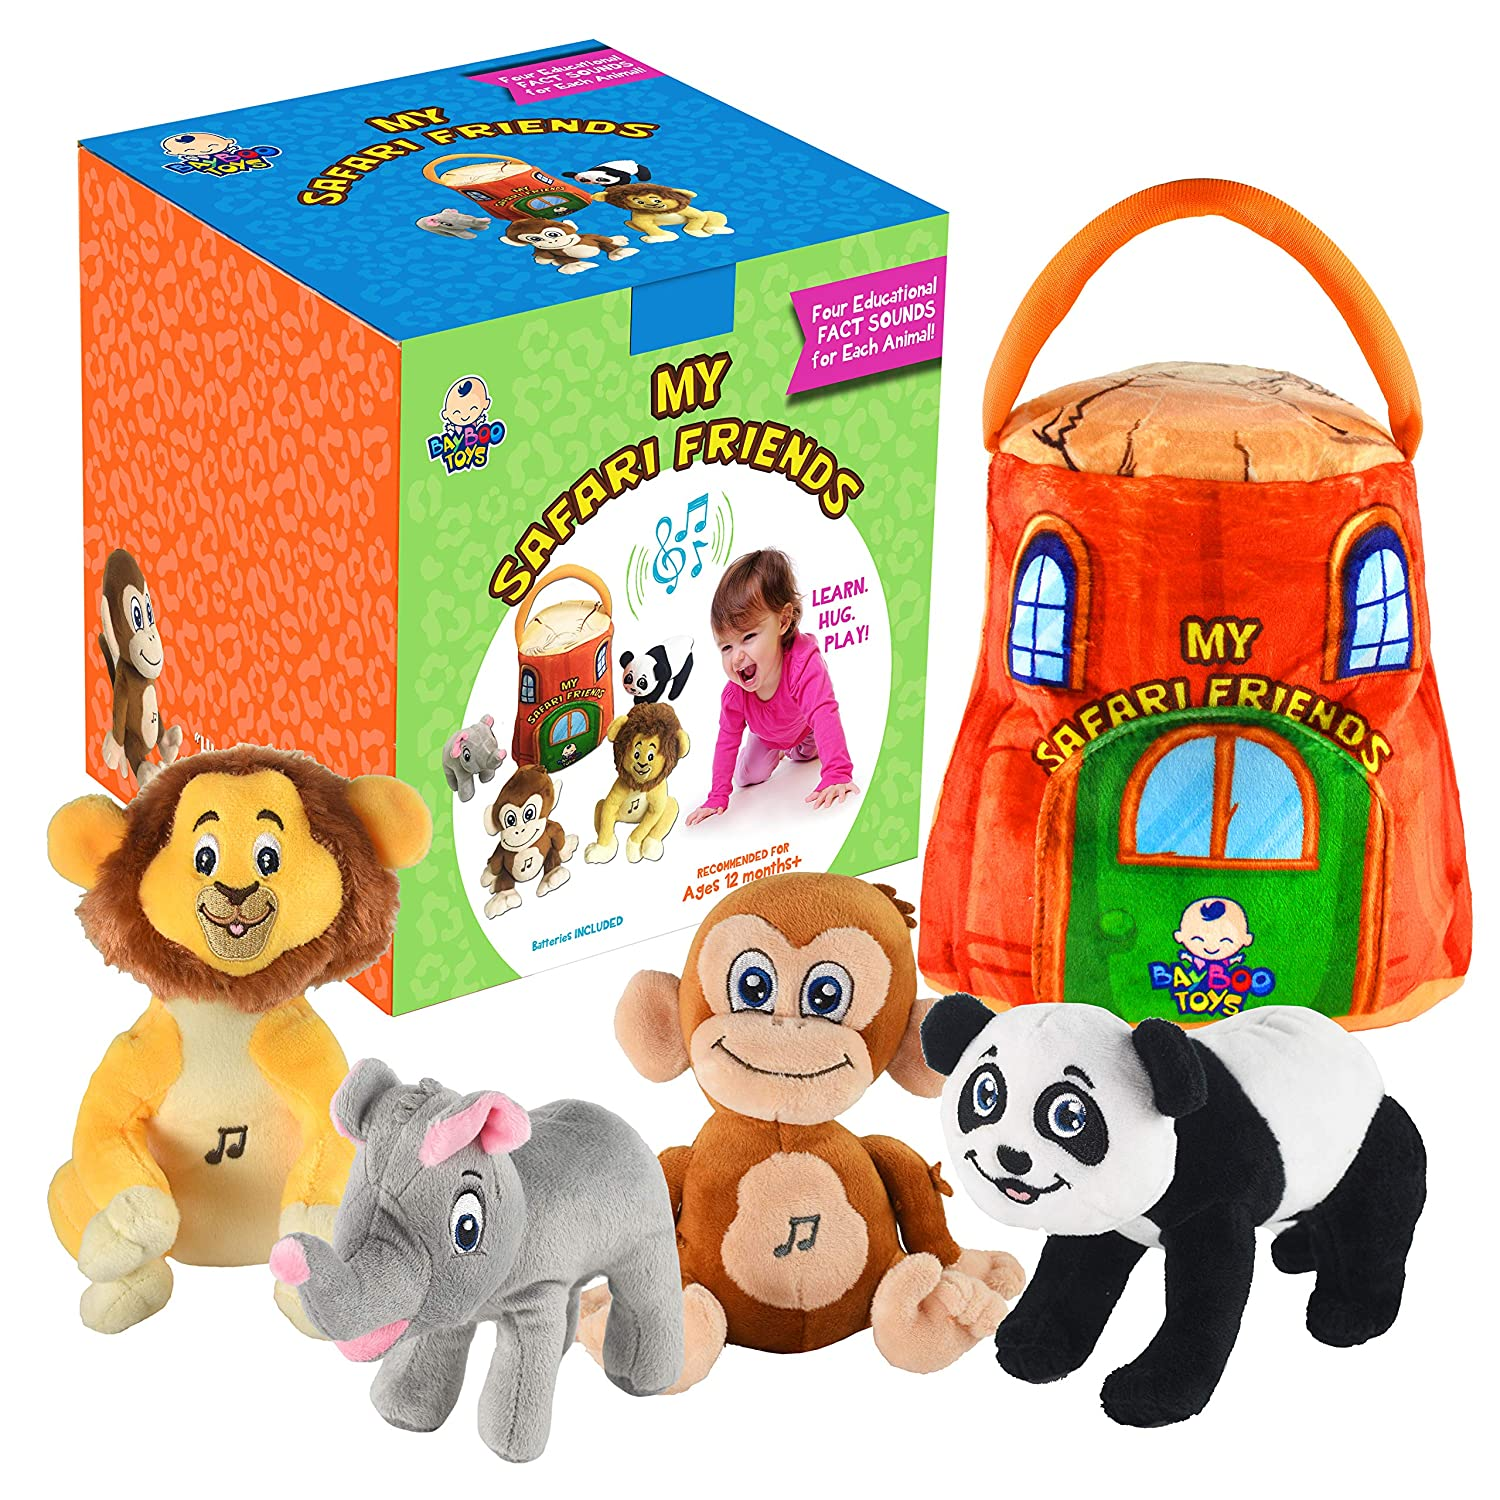 gift for 1 year old EDUCATIONAL Plush Toy Talking Animal Set, Stuffed Animals, Elephant Monkey Lion & Panda Baby Toddler Toys, FEATURING 4 ADORABLE AUDIOS for ALL 4 Toys, REAL SOUNDS and 4 FUN FACTS!